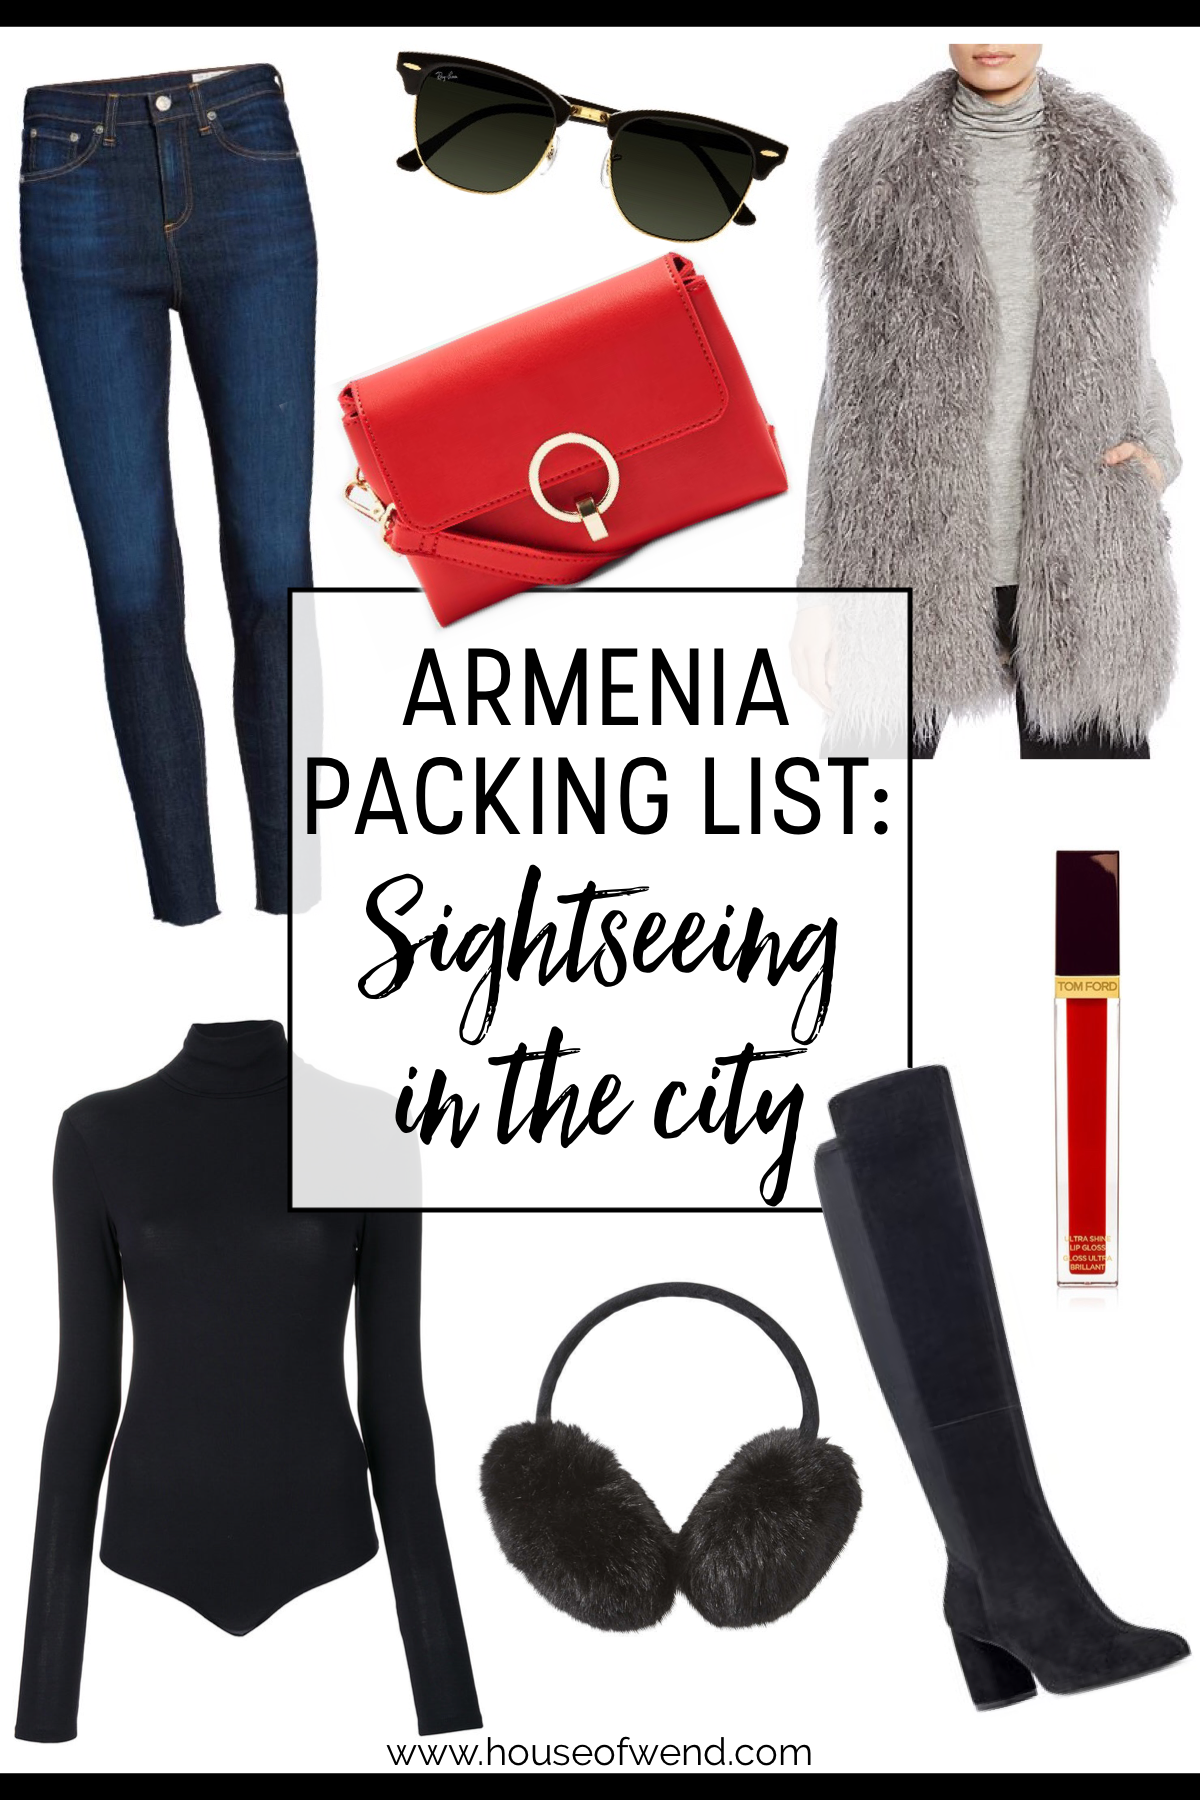 Amenia packing list for sightseeing in the city